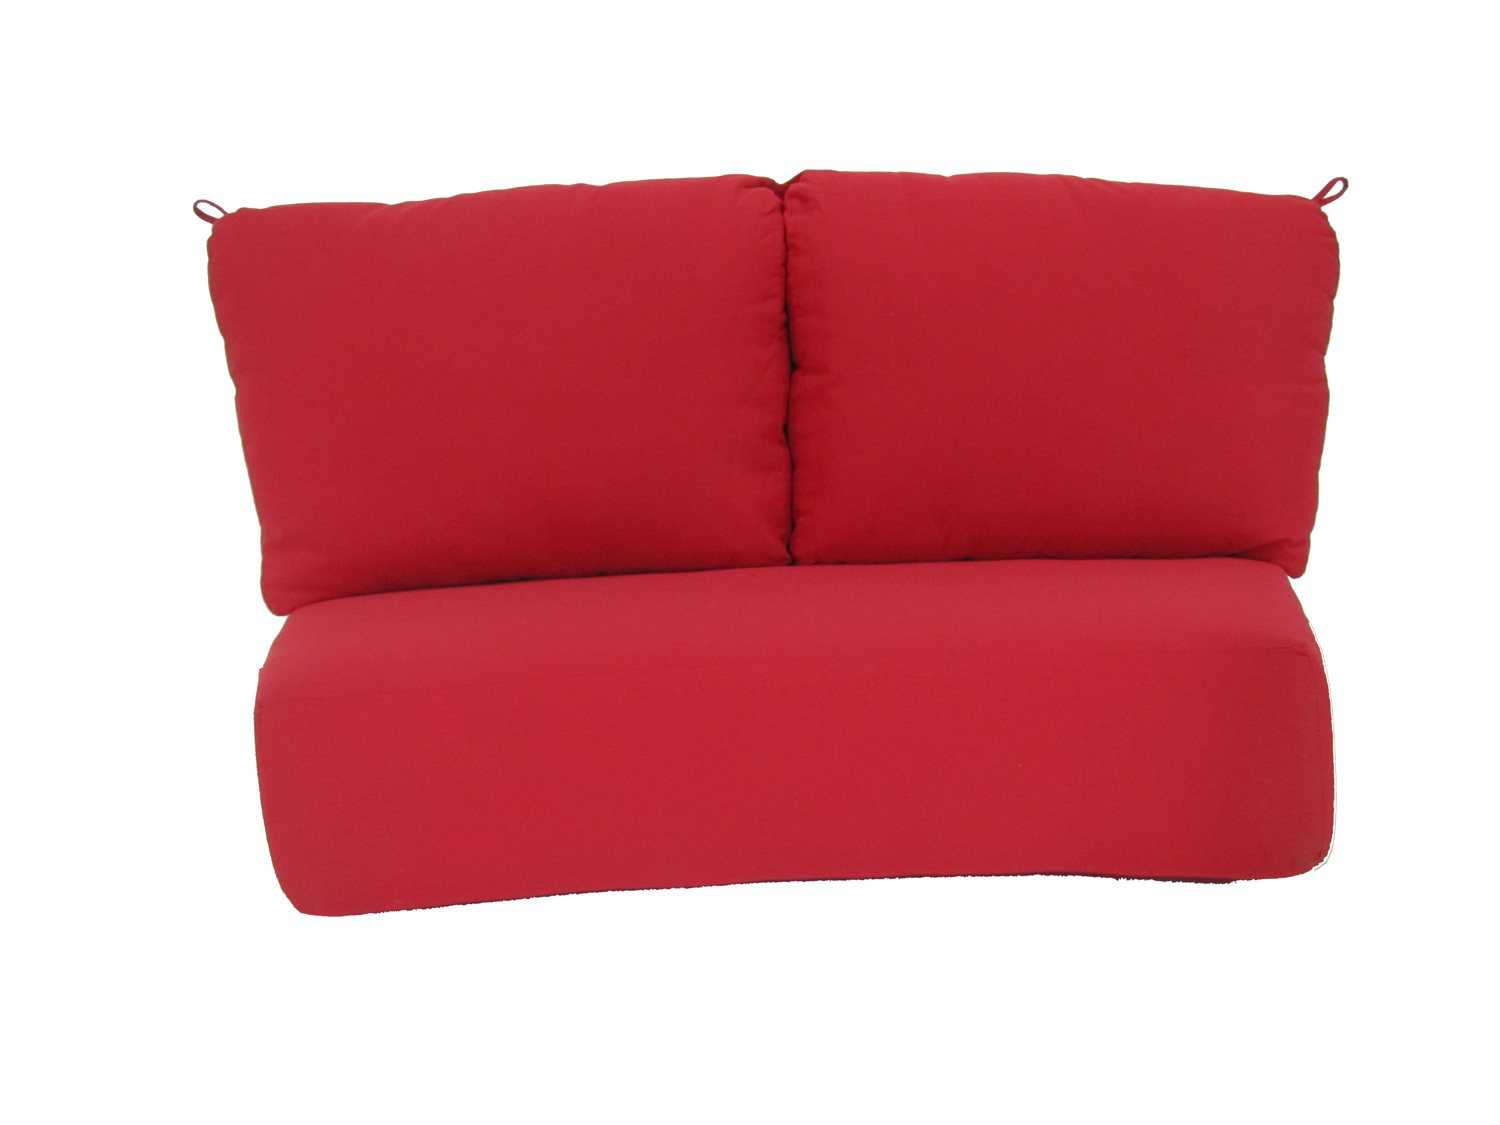 Meadowcraft Cove Replacement Deep Seating Loveseat Seat